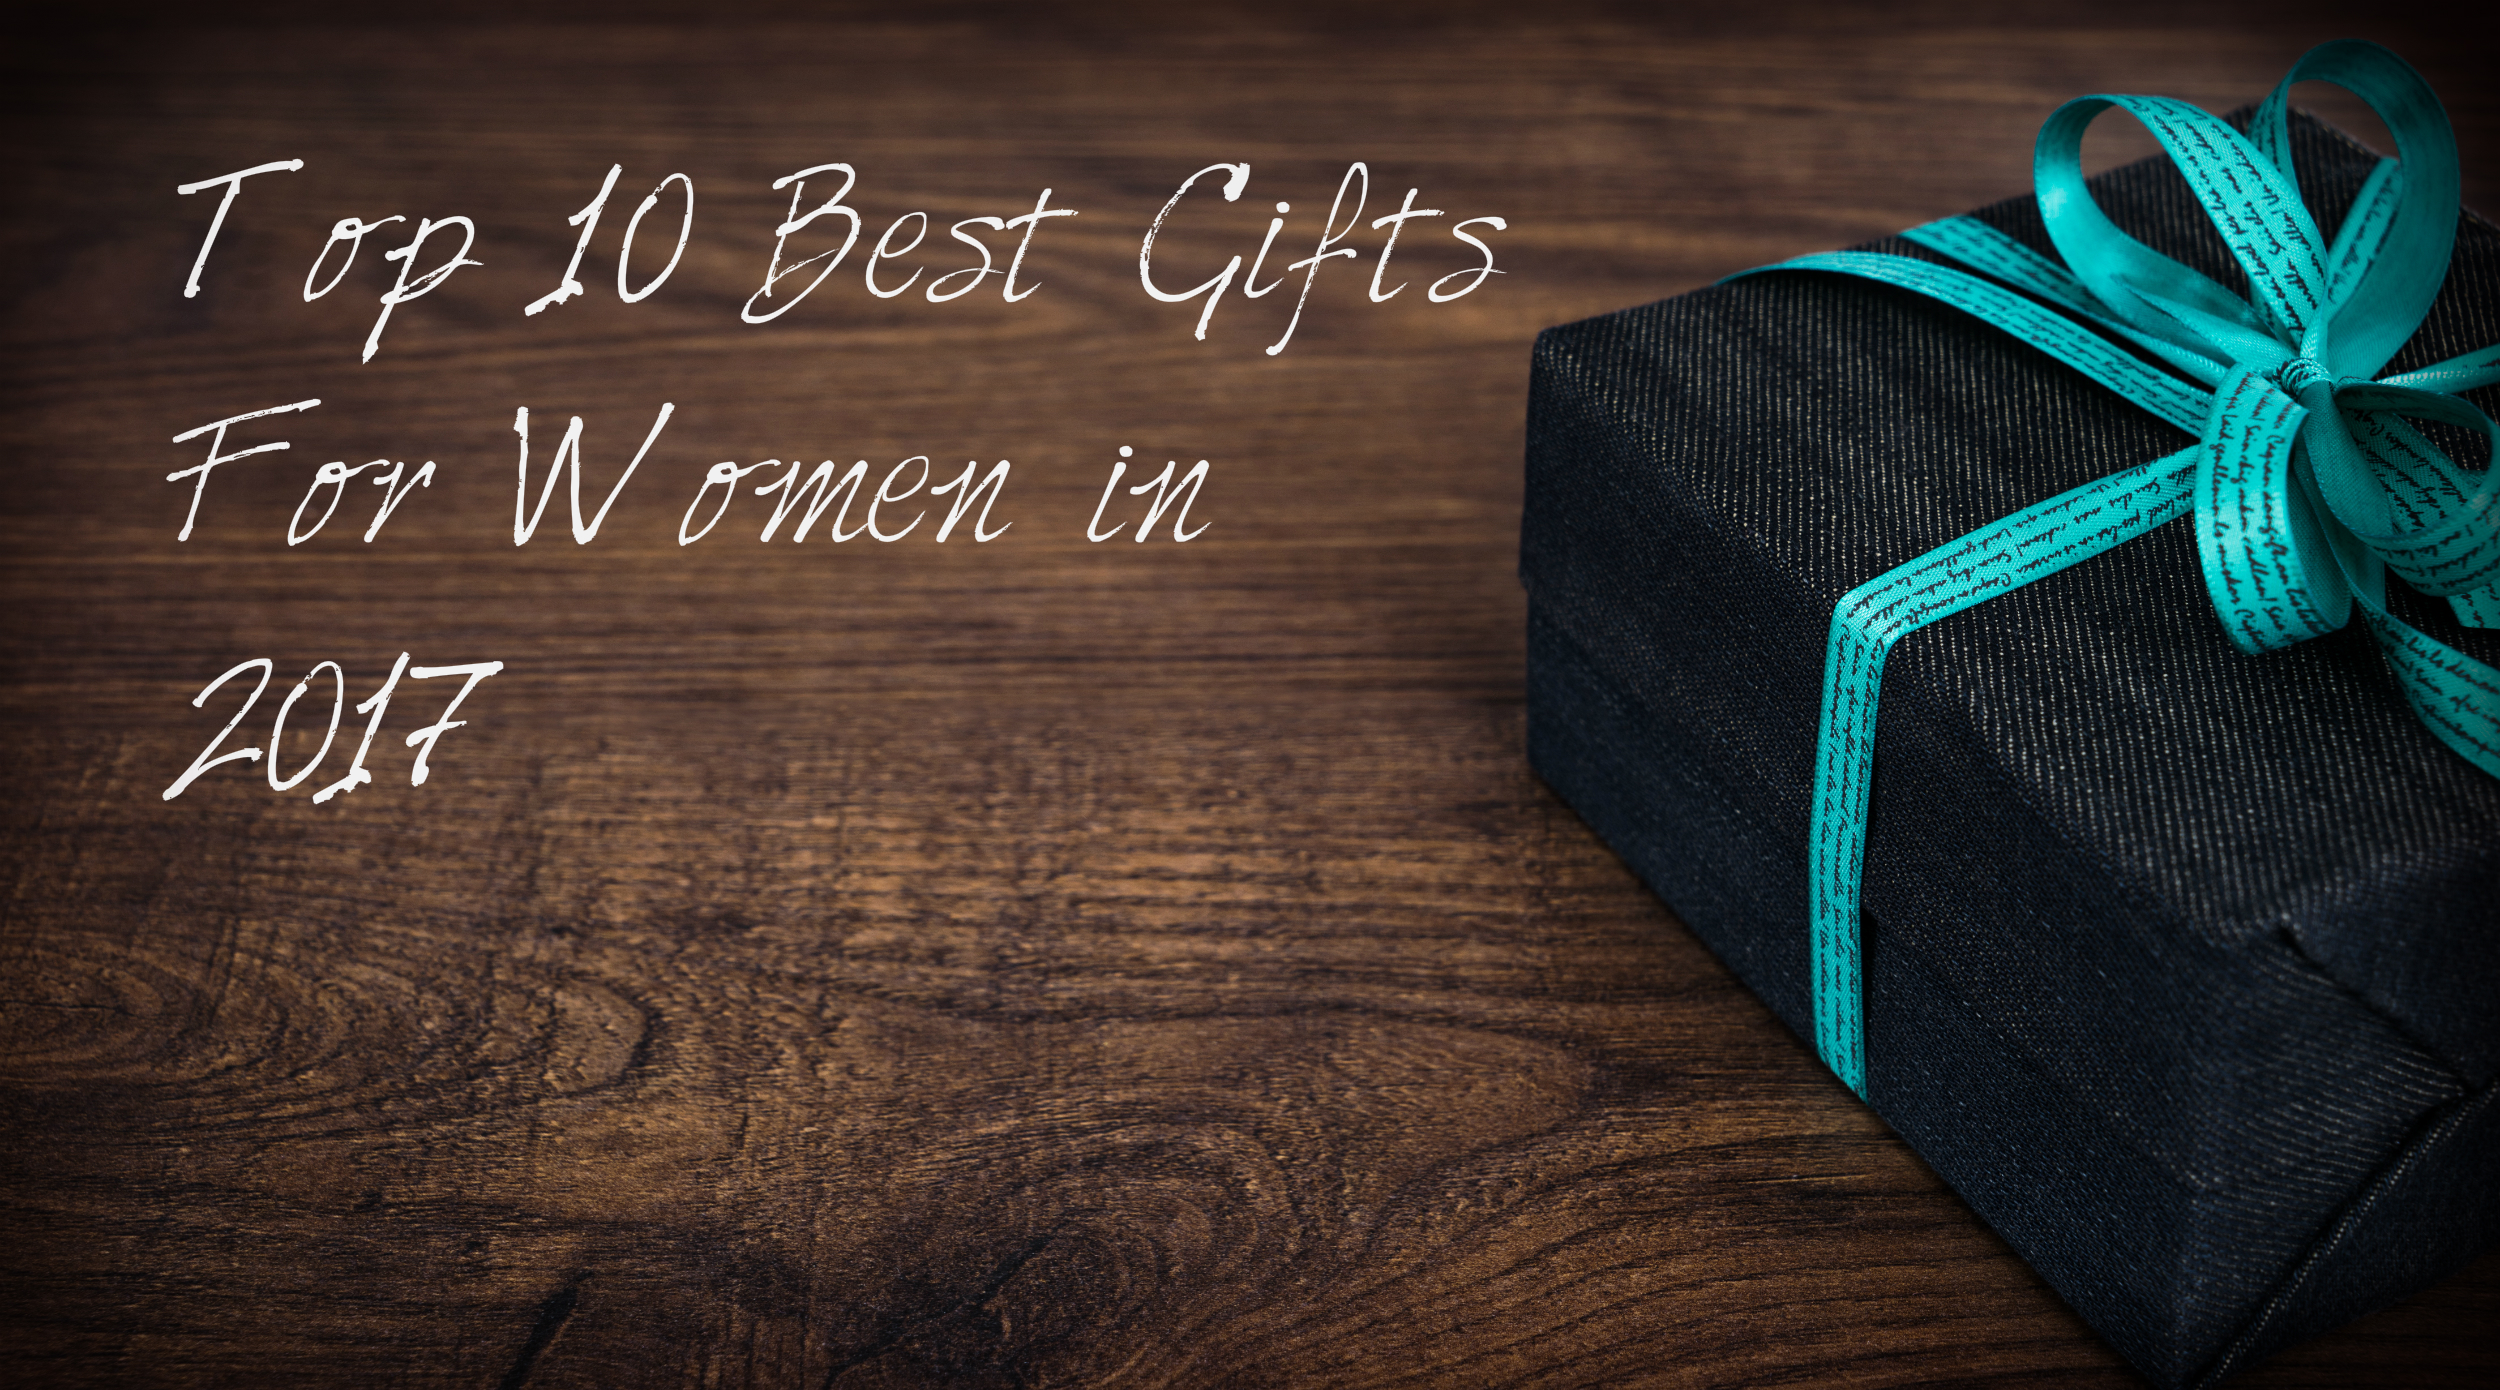 Best Gifts for Women in 2018